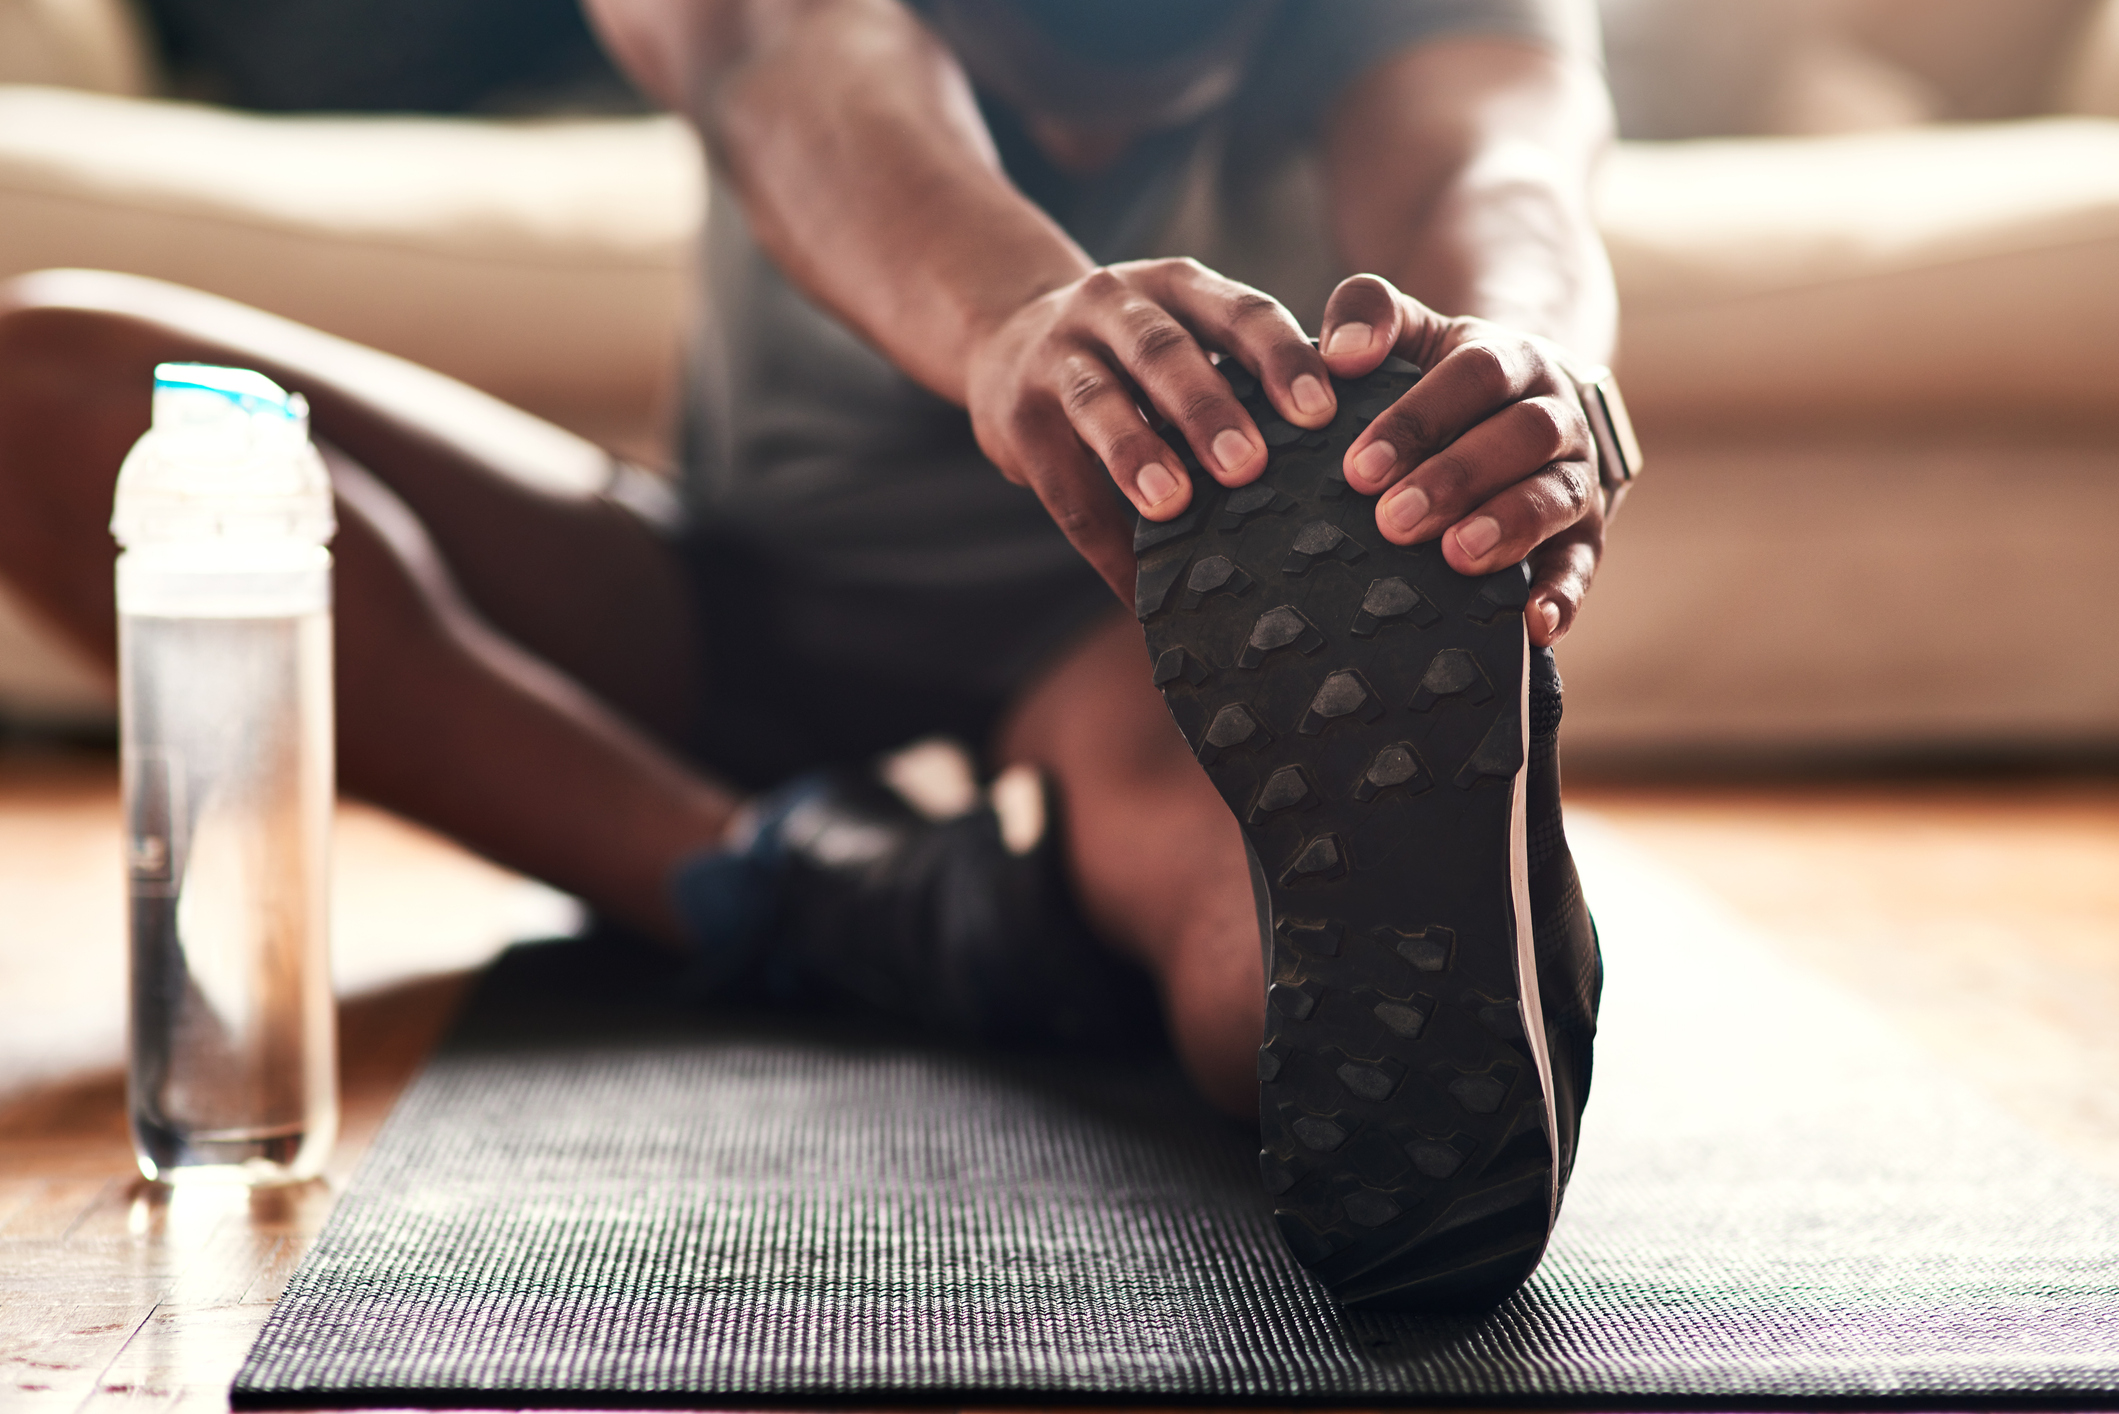 5 Great at Home Morning Moves To Start Your Day